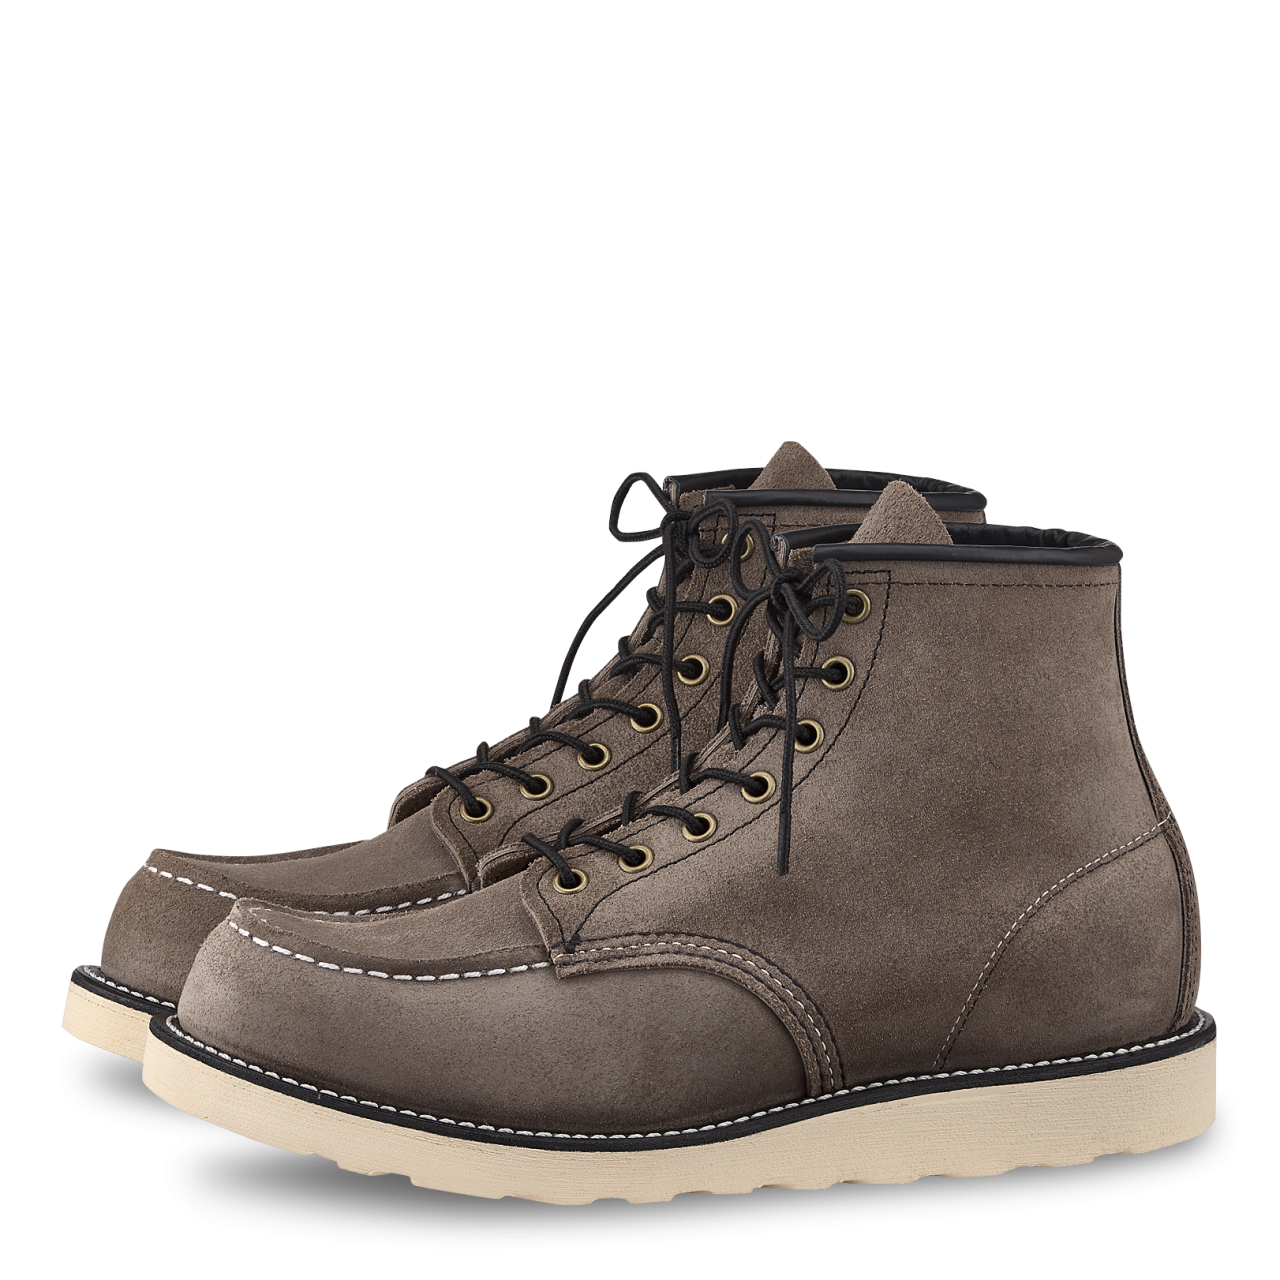 Red Wing 8863 Moc Toe